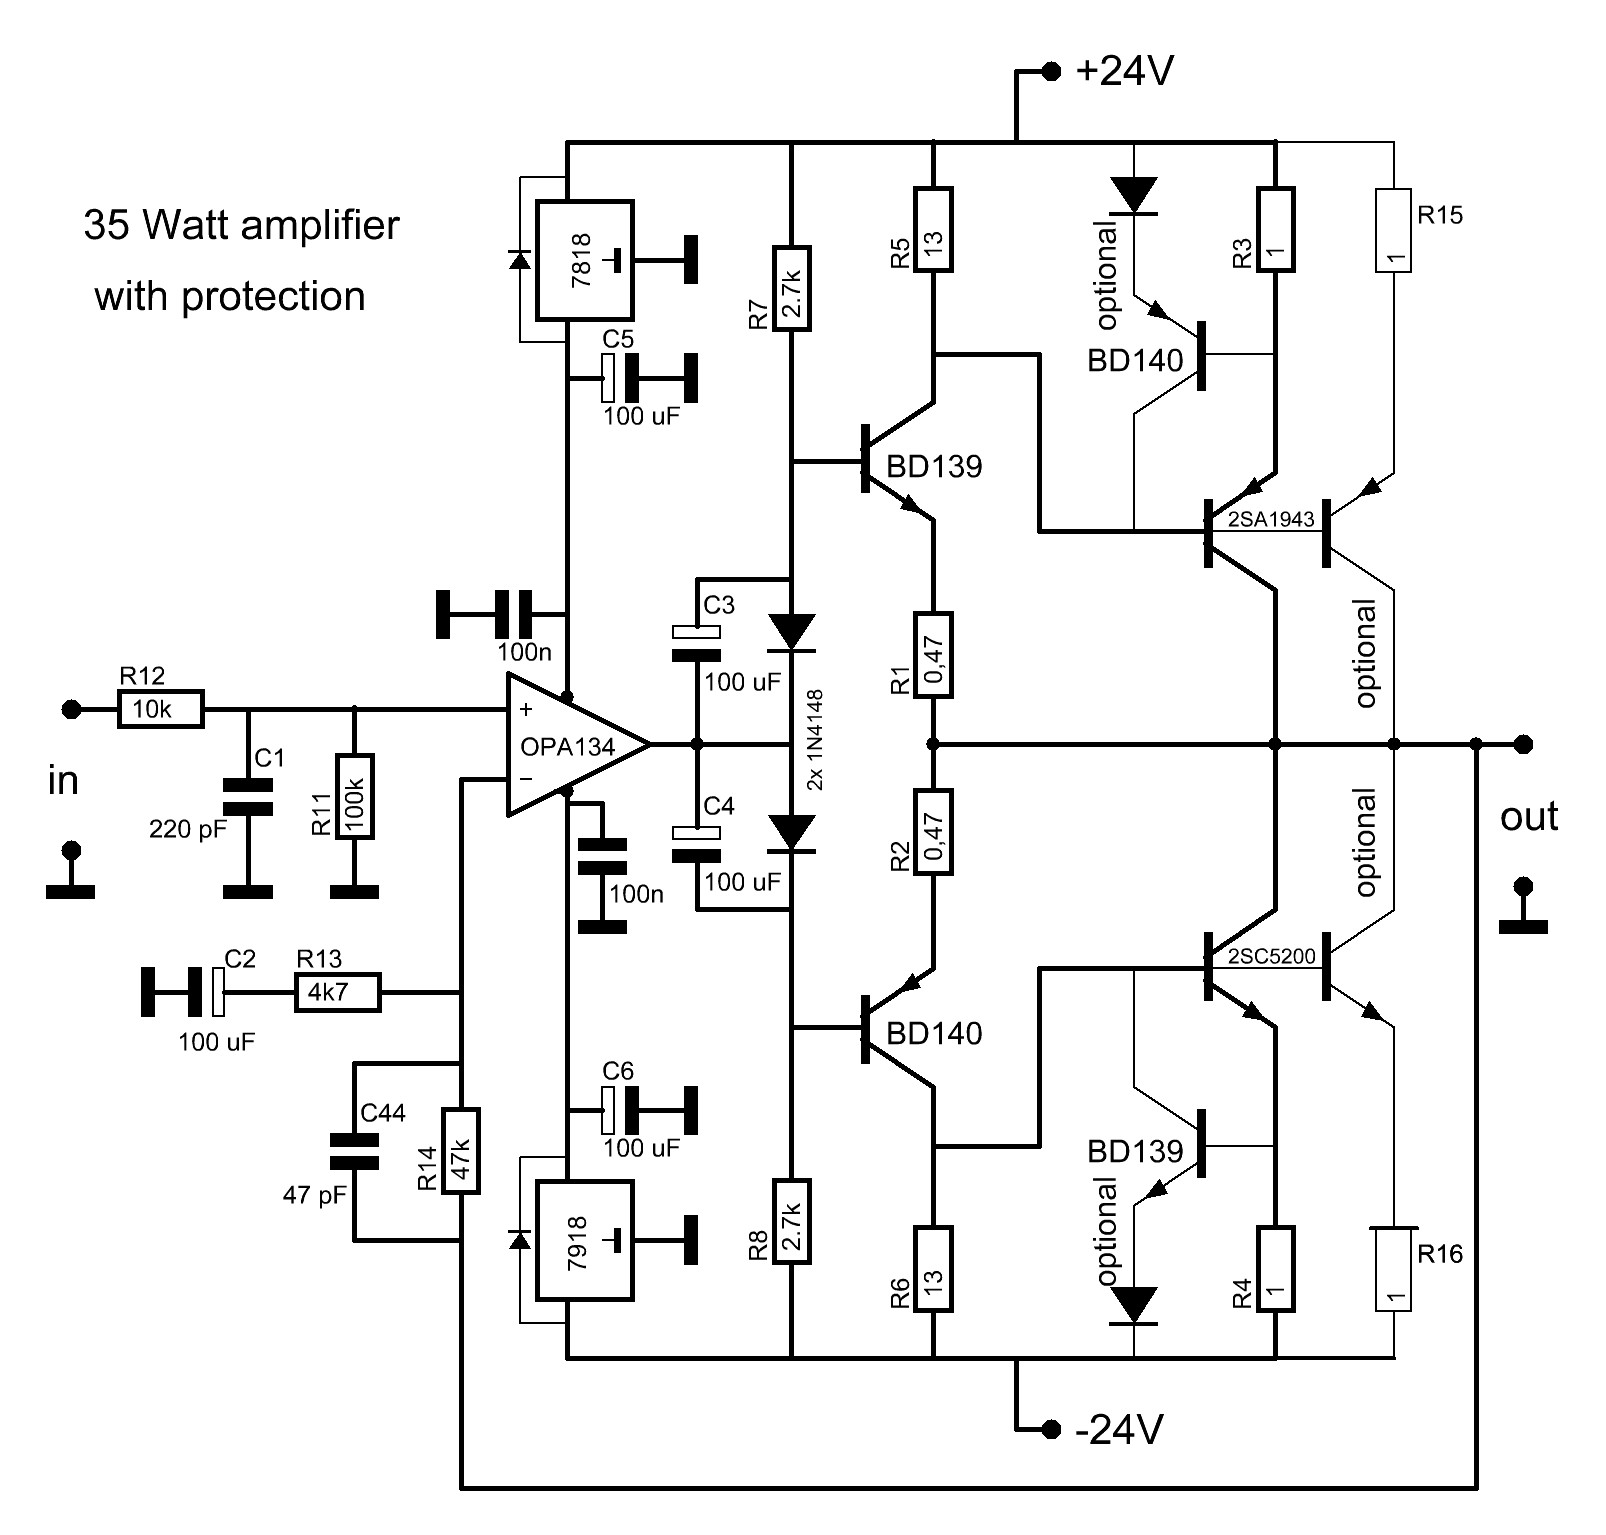 hight resolution of 2sc5200 2sa1943 amplifier circuit the main diagram 2sc5200 2sa1943 amplifier circuit